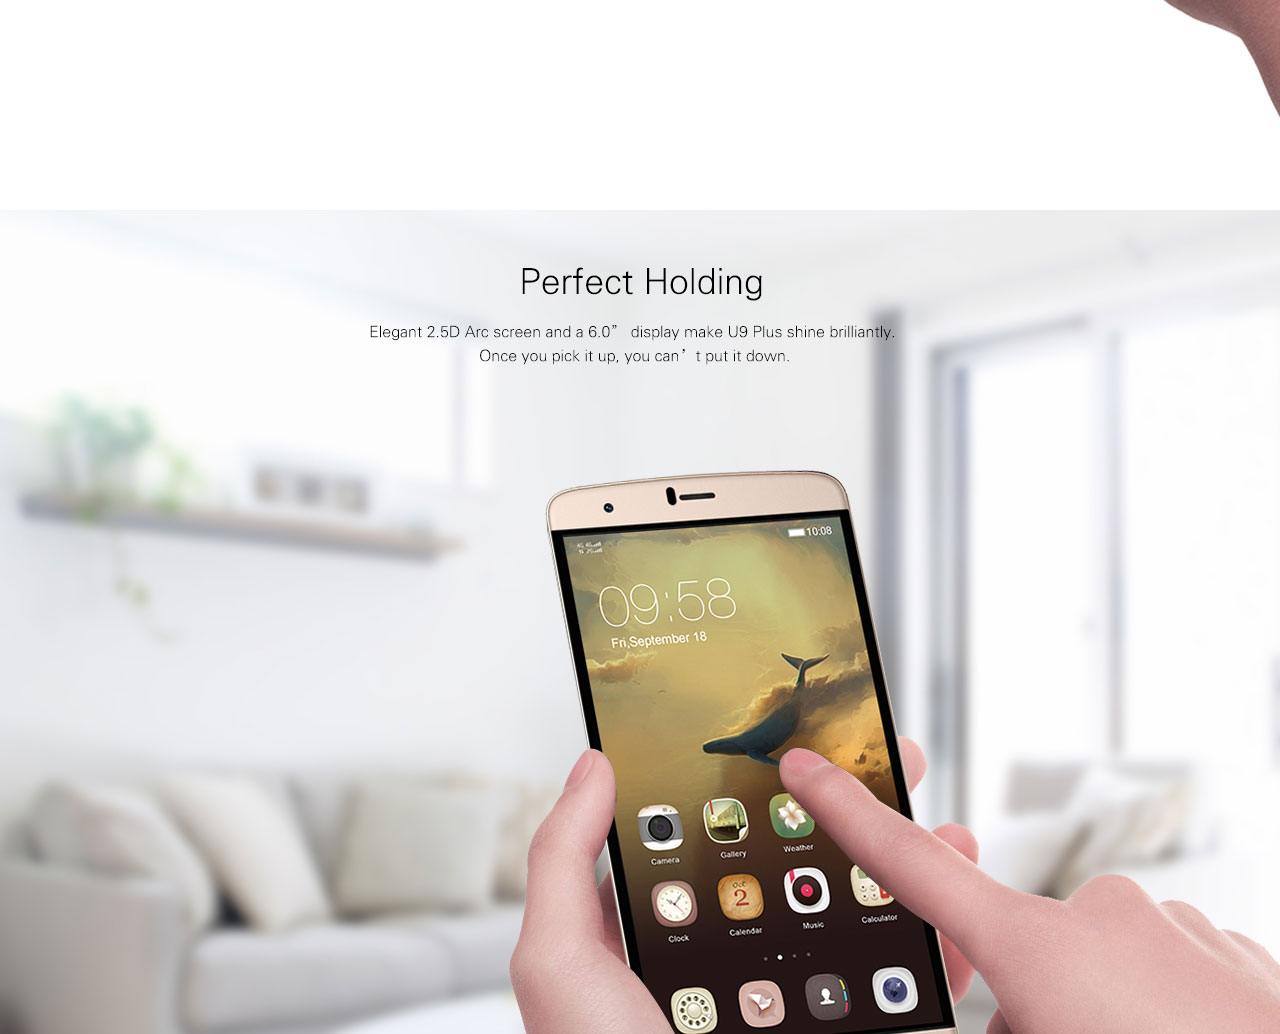 iNEW U9Plus 4G Original Mobile phone Android 5.1 MTK6735A 1.3GHz Quad Core 2GB RAM 16GB ROM 13 MP Smartphone cellphone 3000mAh